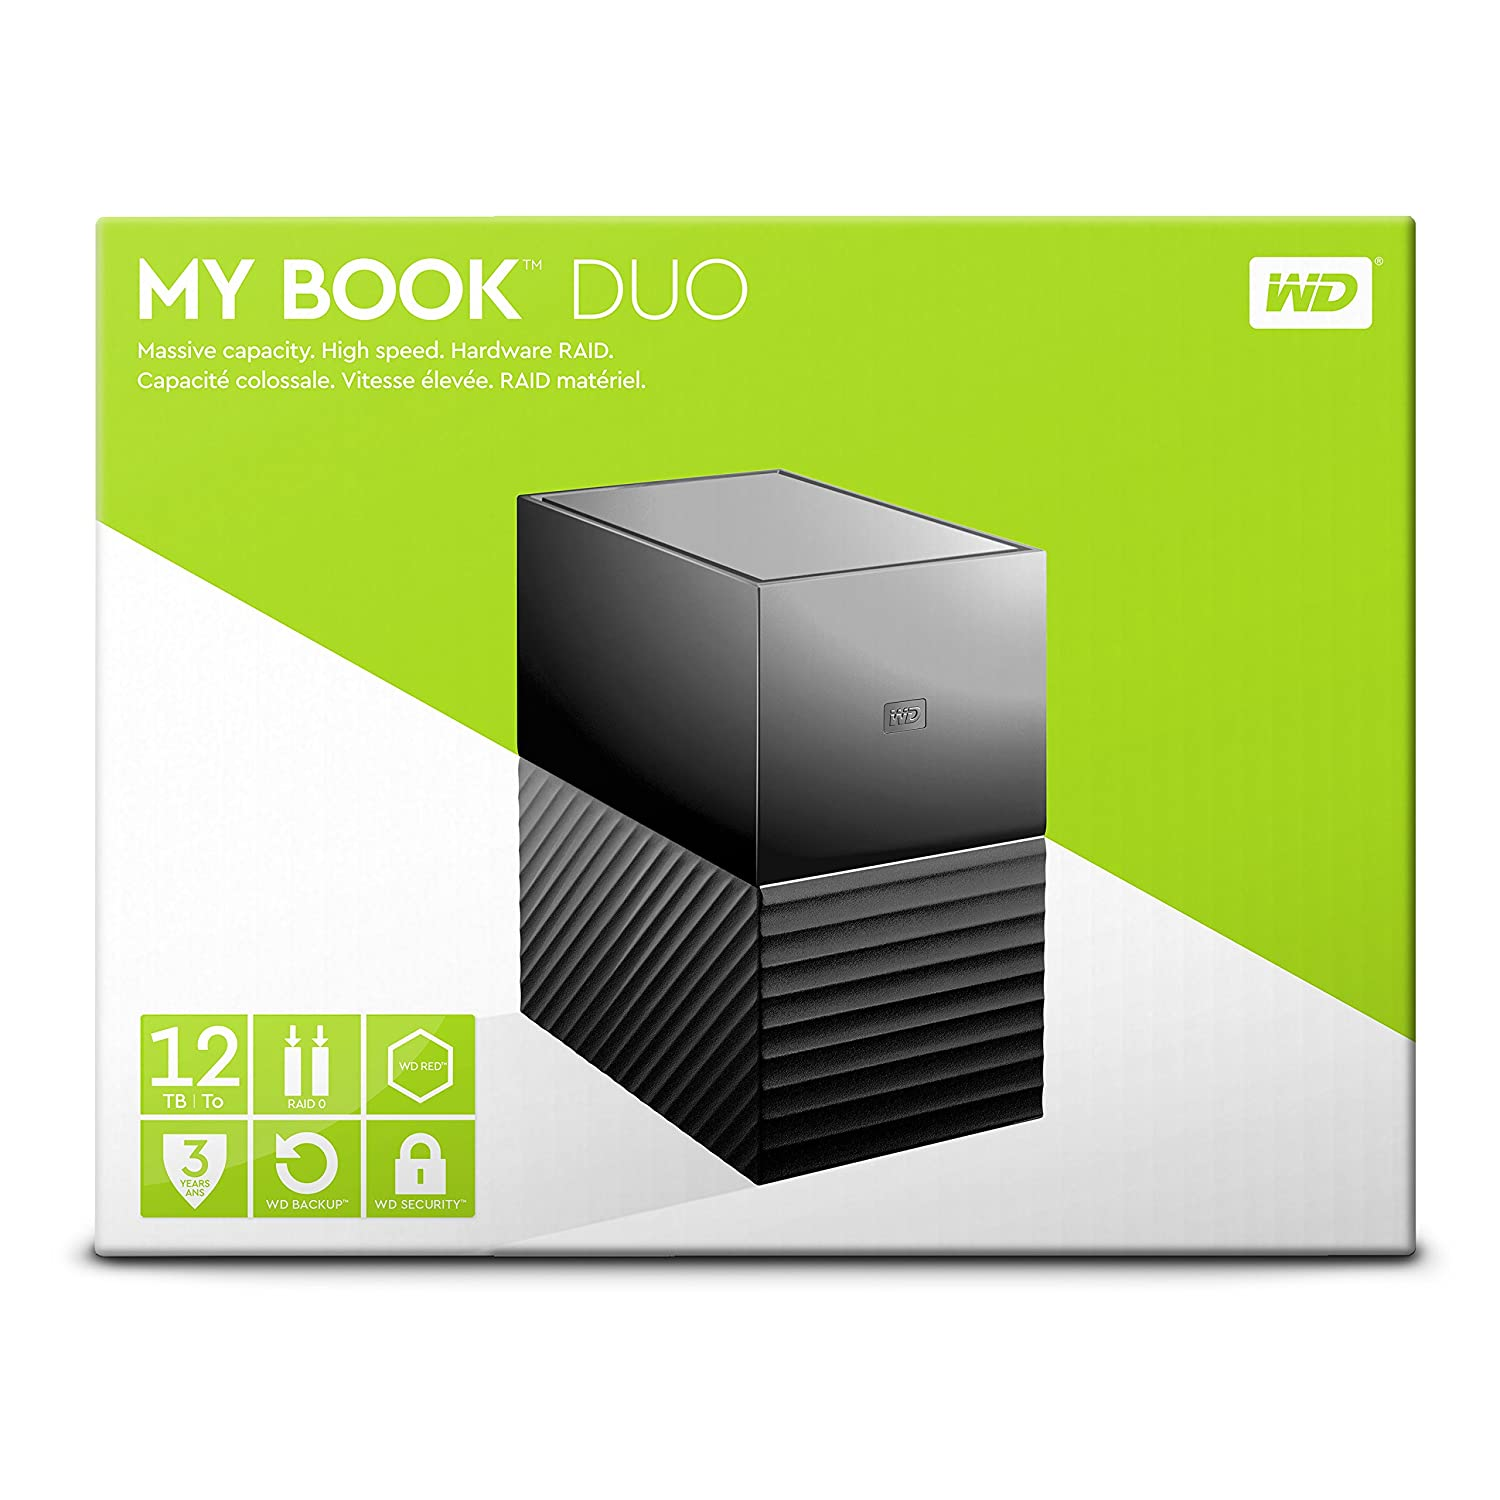 My Book Duo 12TBHigh Capacity External Hard Drive with